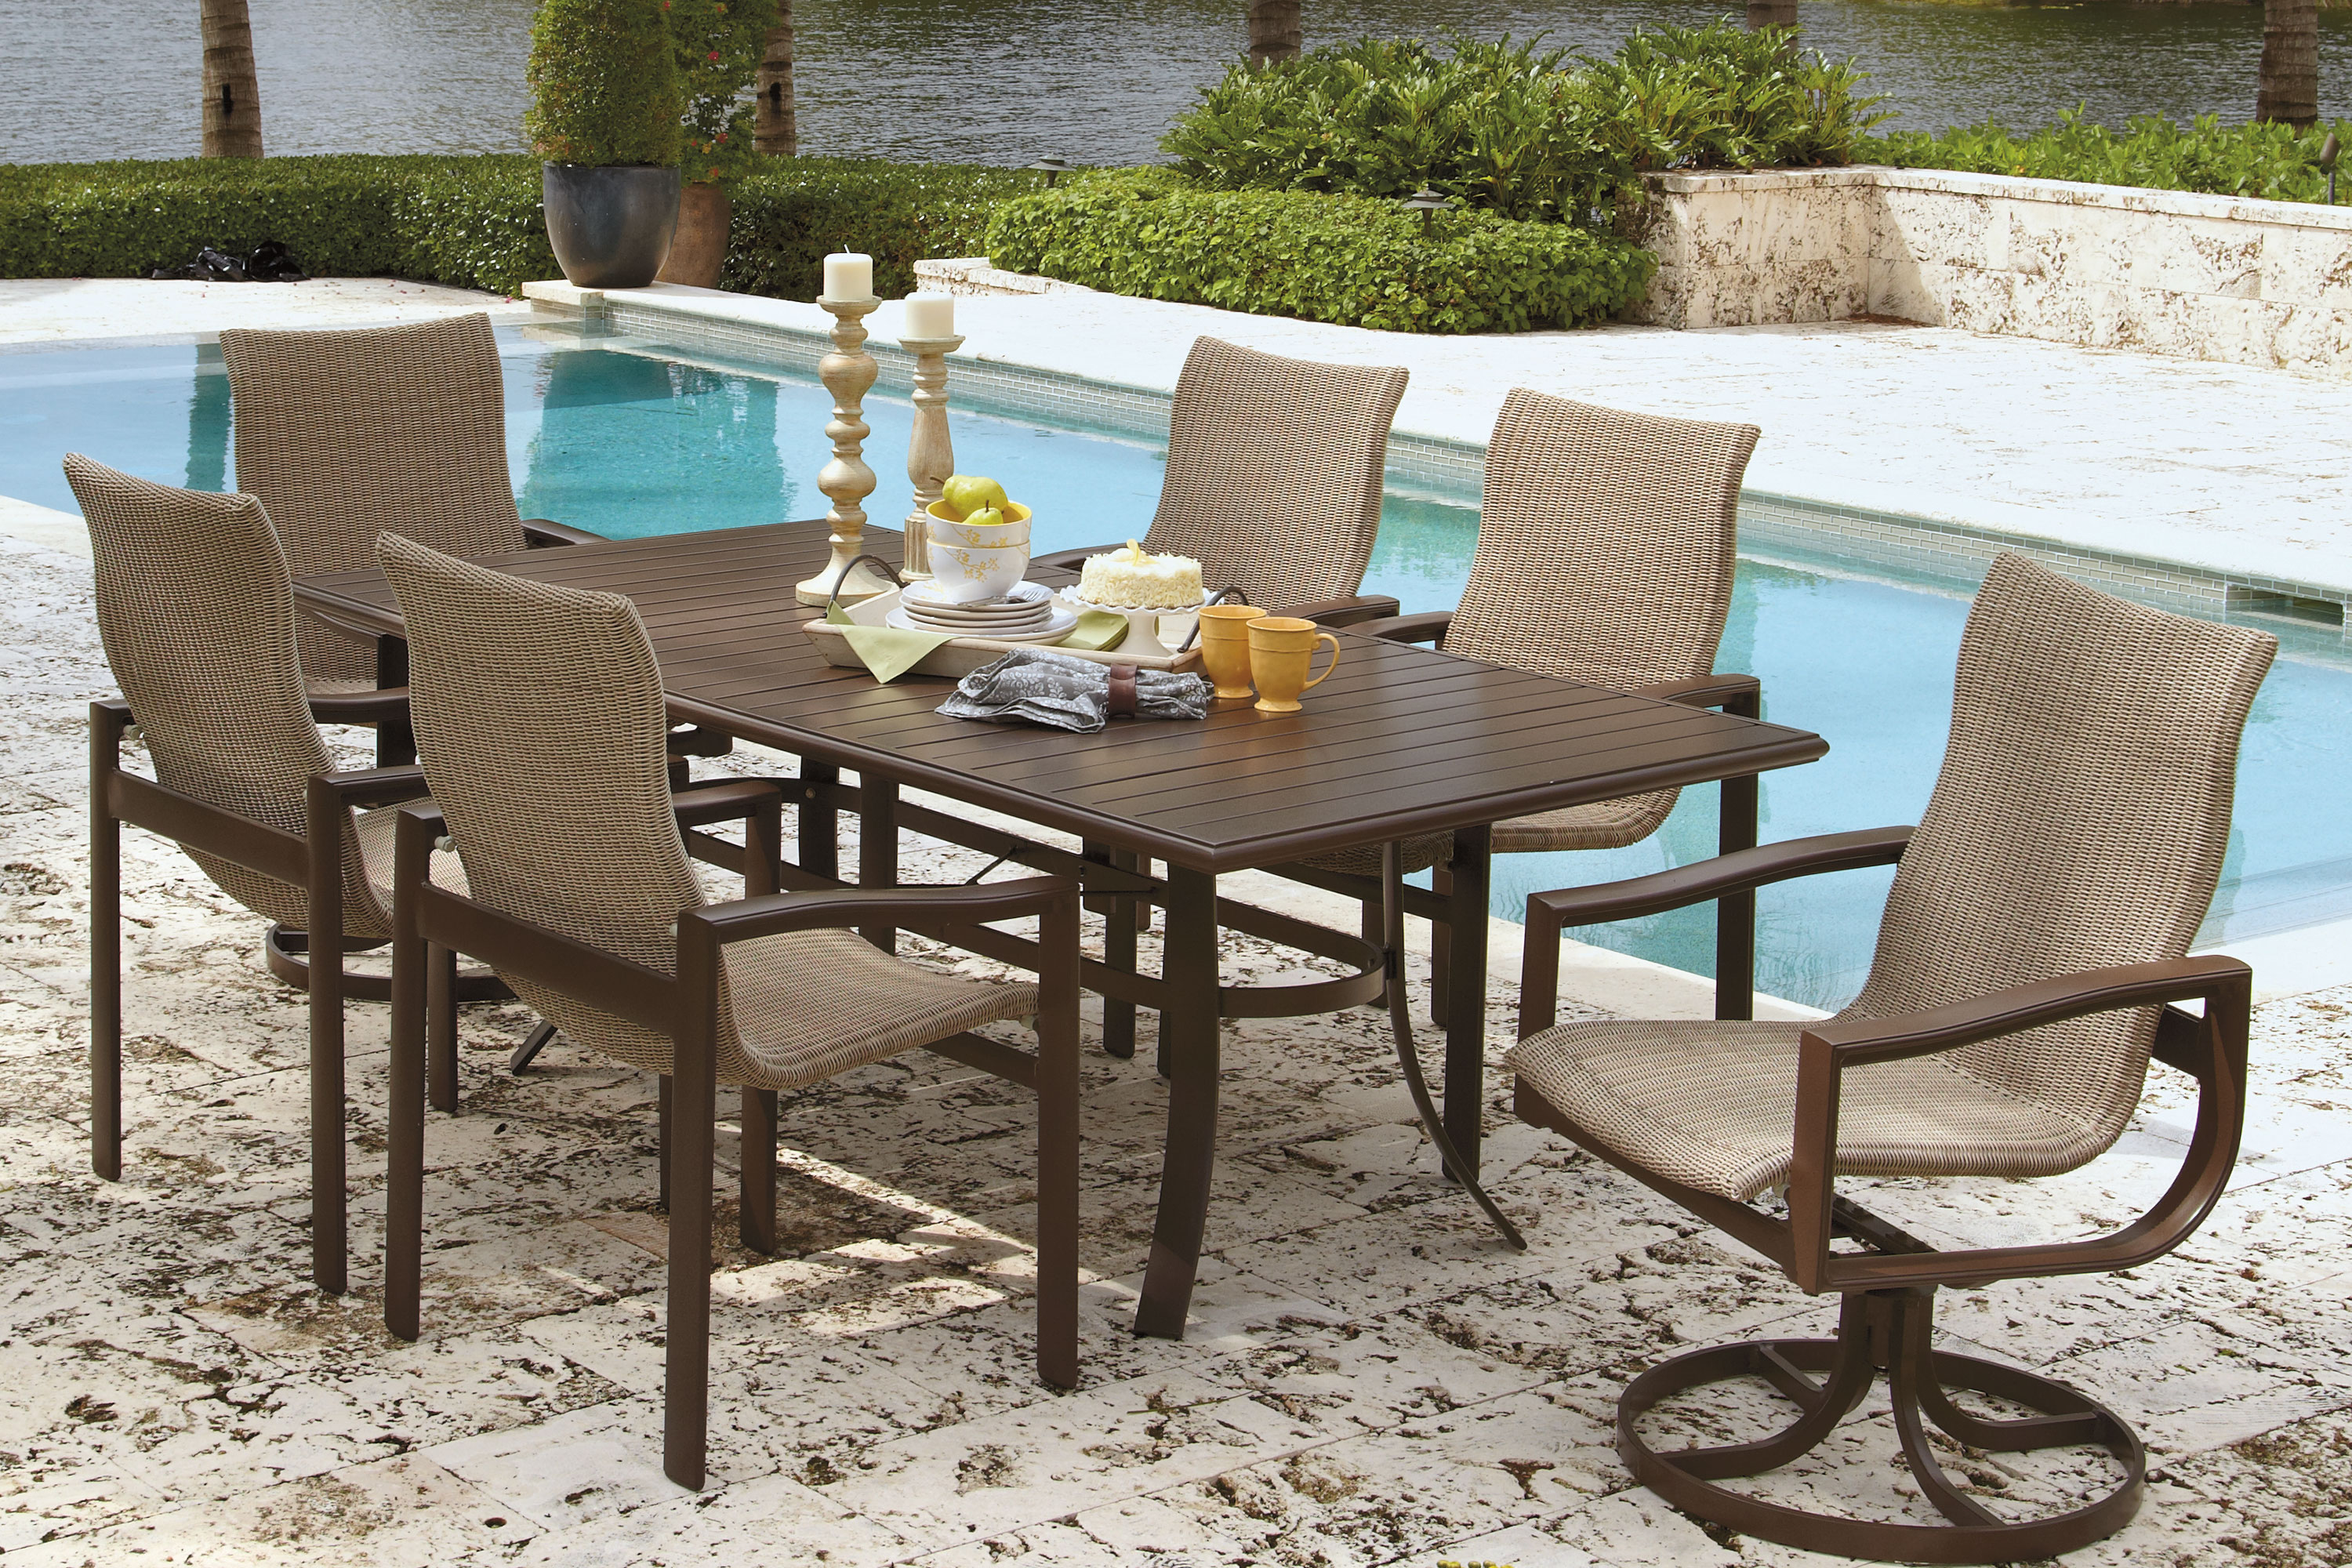 The Belvedere Woven Shown Here In A Dining Group Is A Very Durable Yet  Versatile Seating Option. They Have A Traditional Design With An Extra Wide  Aluminum ...